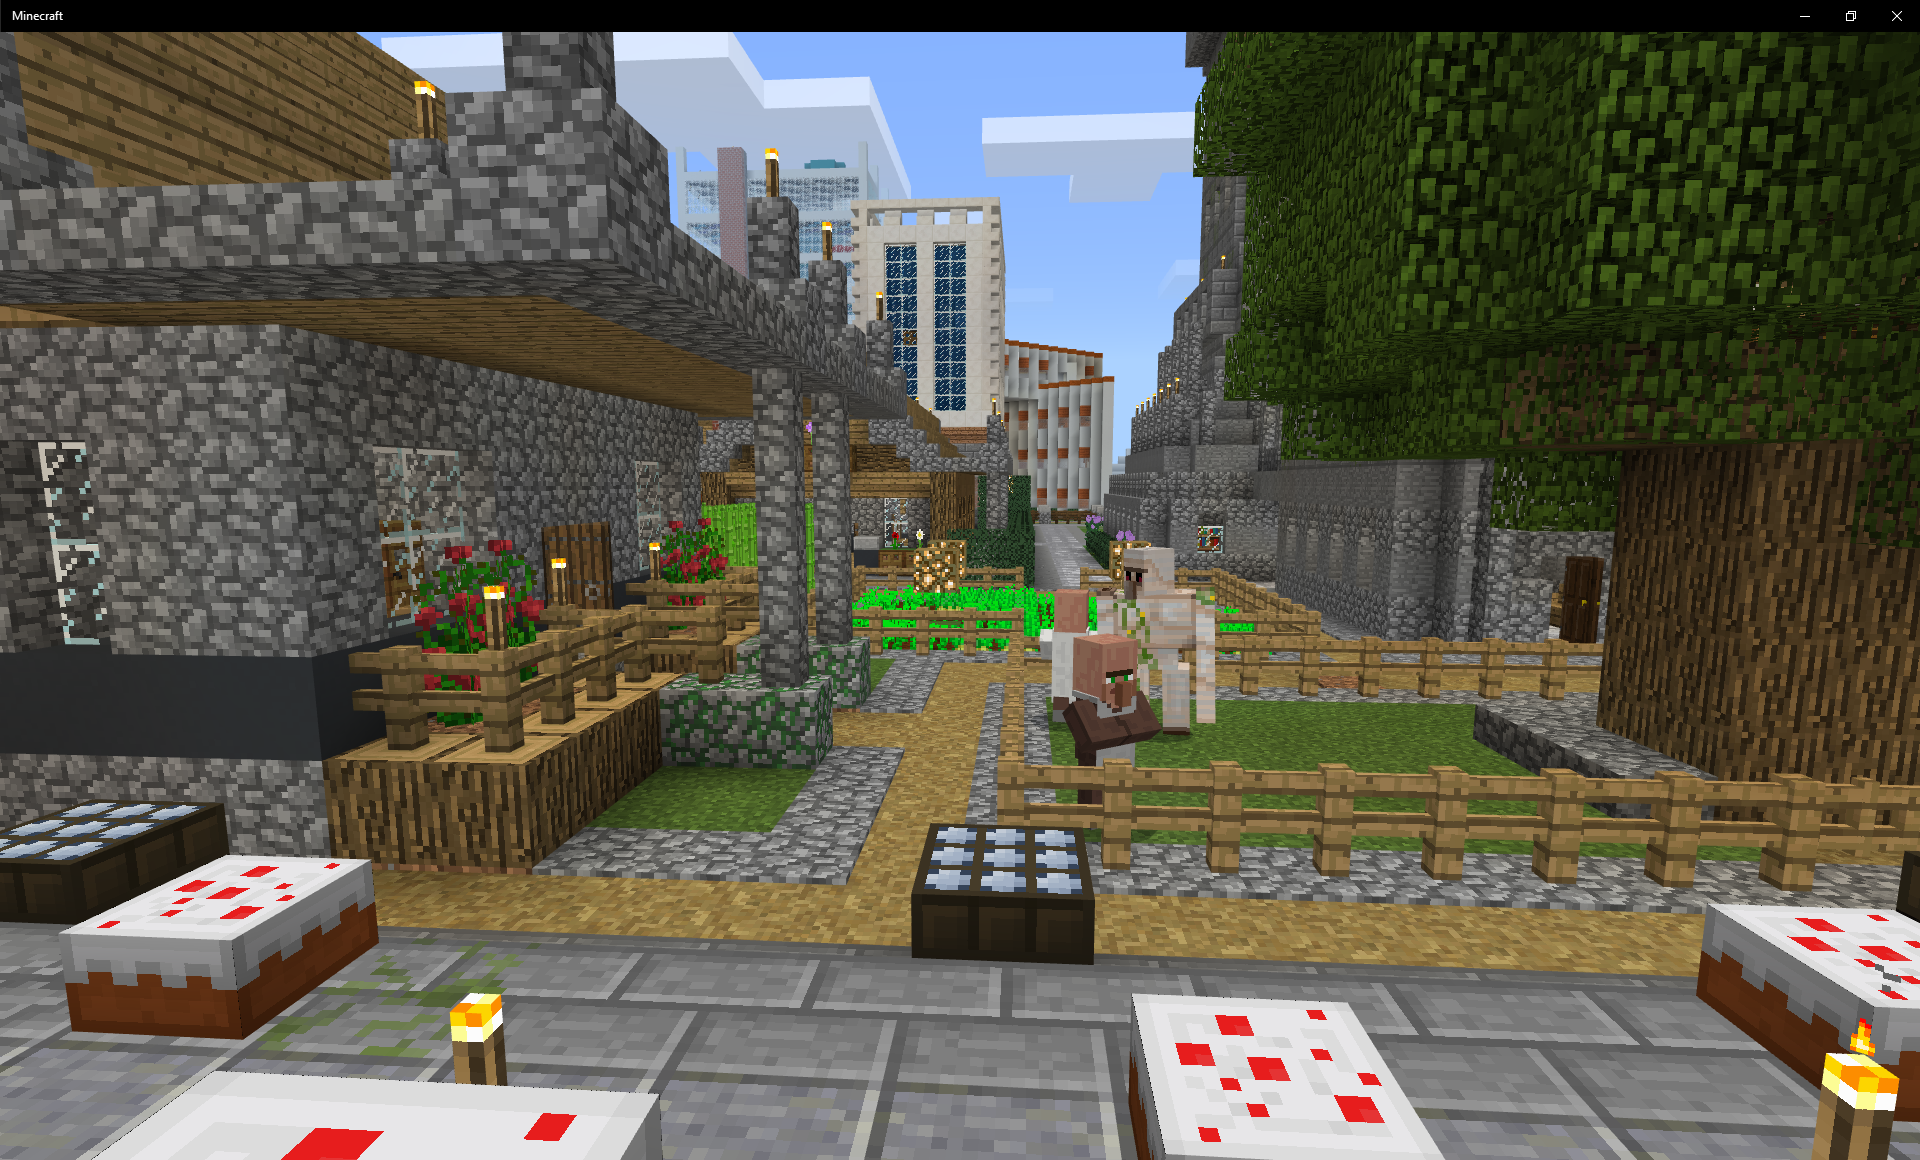 Six ways Minecraft can help kids and adults learn | Windows